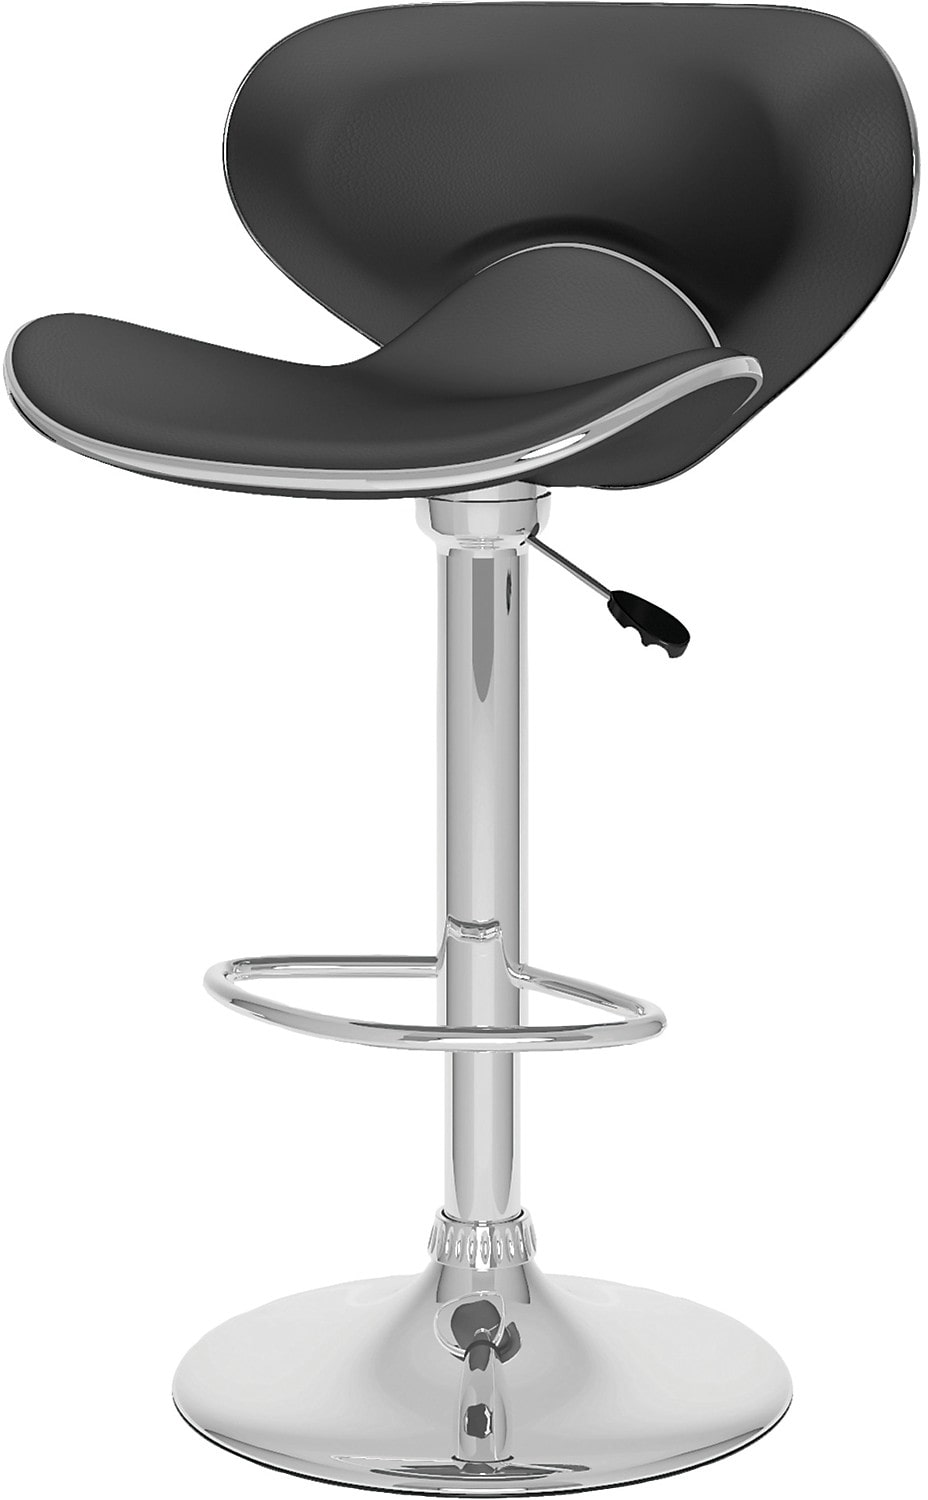 Dining Room Furniture - CorLiving Curved Form-Fitting Adjustable Bar Stool - Black